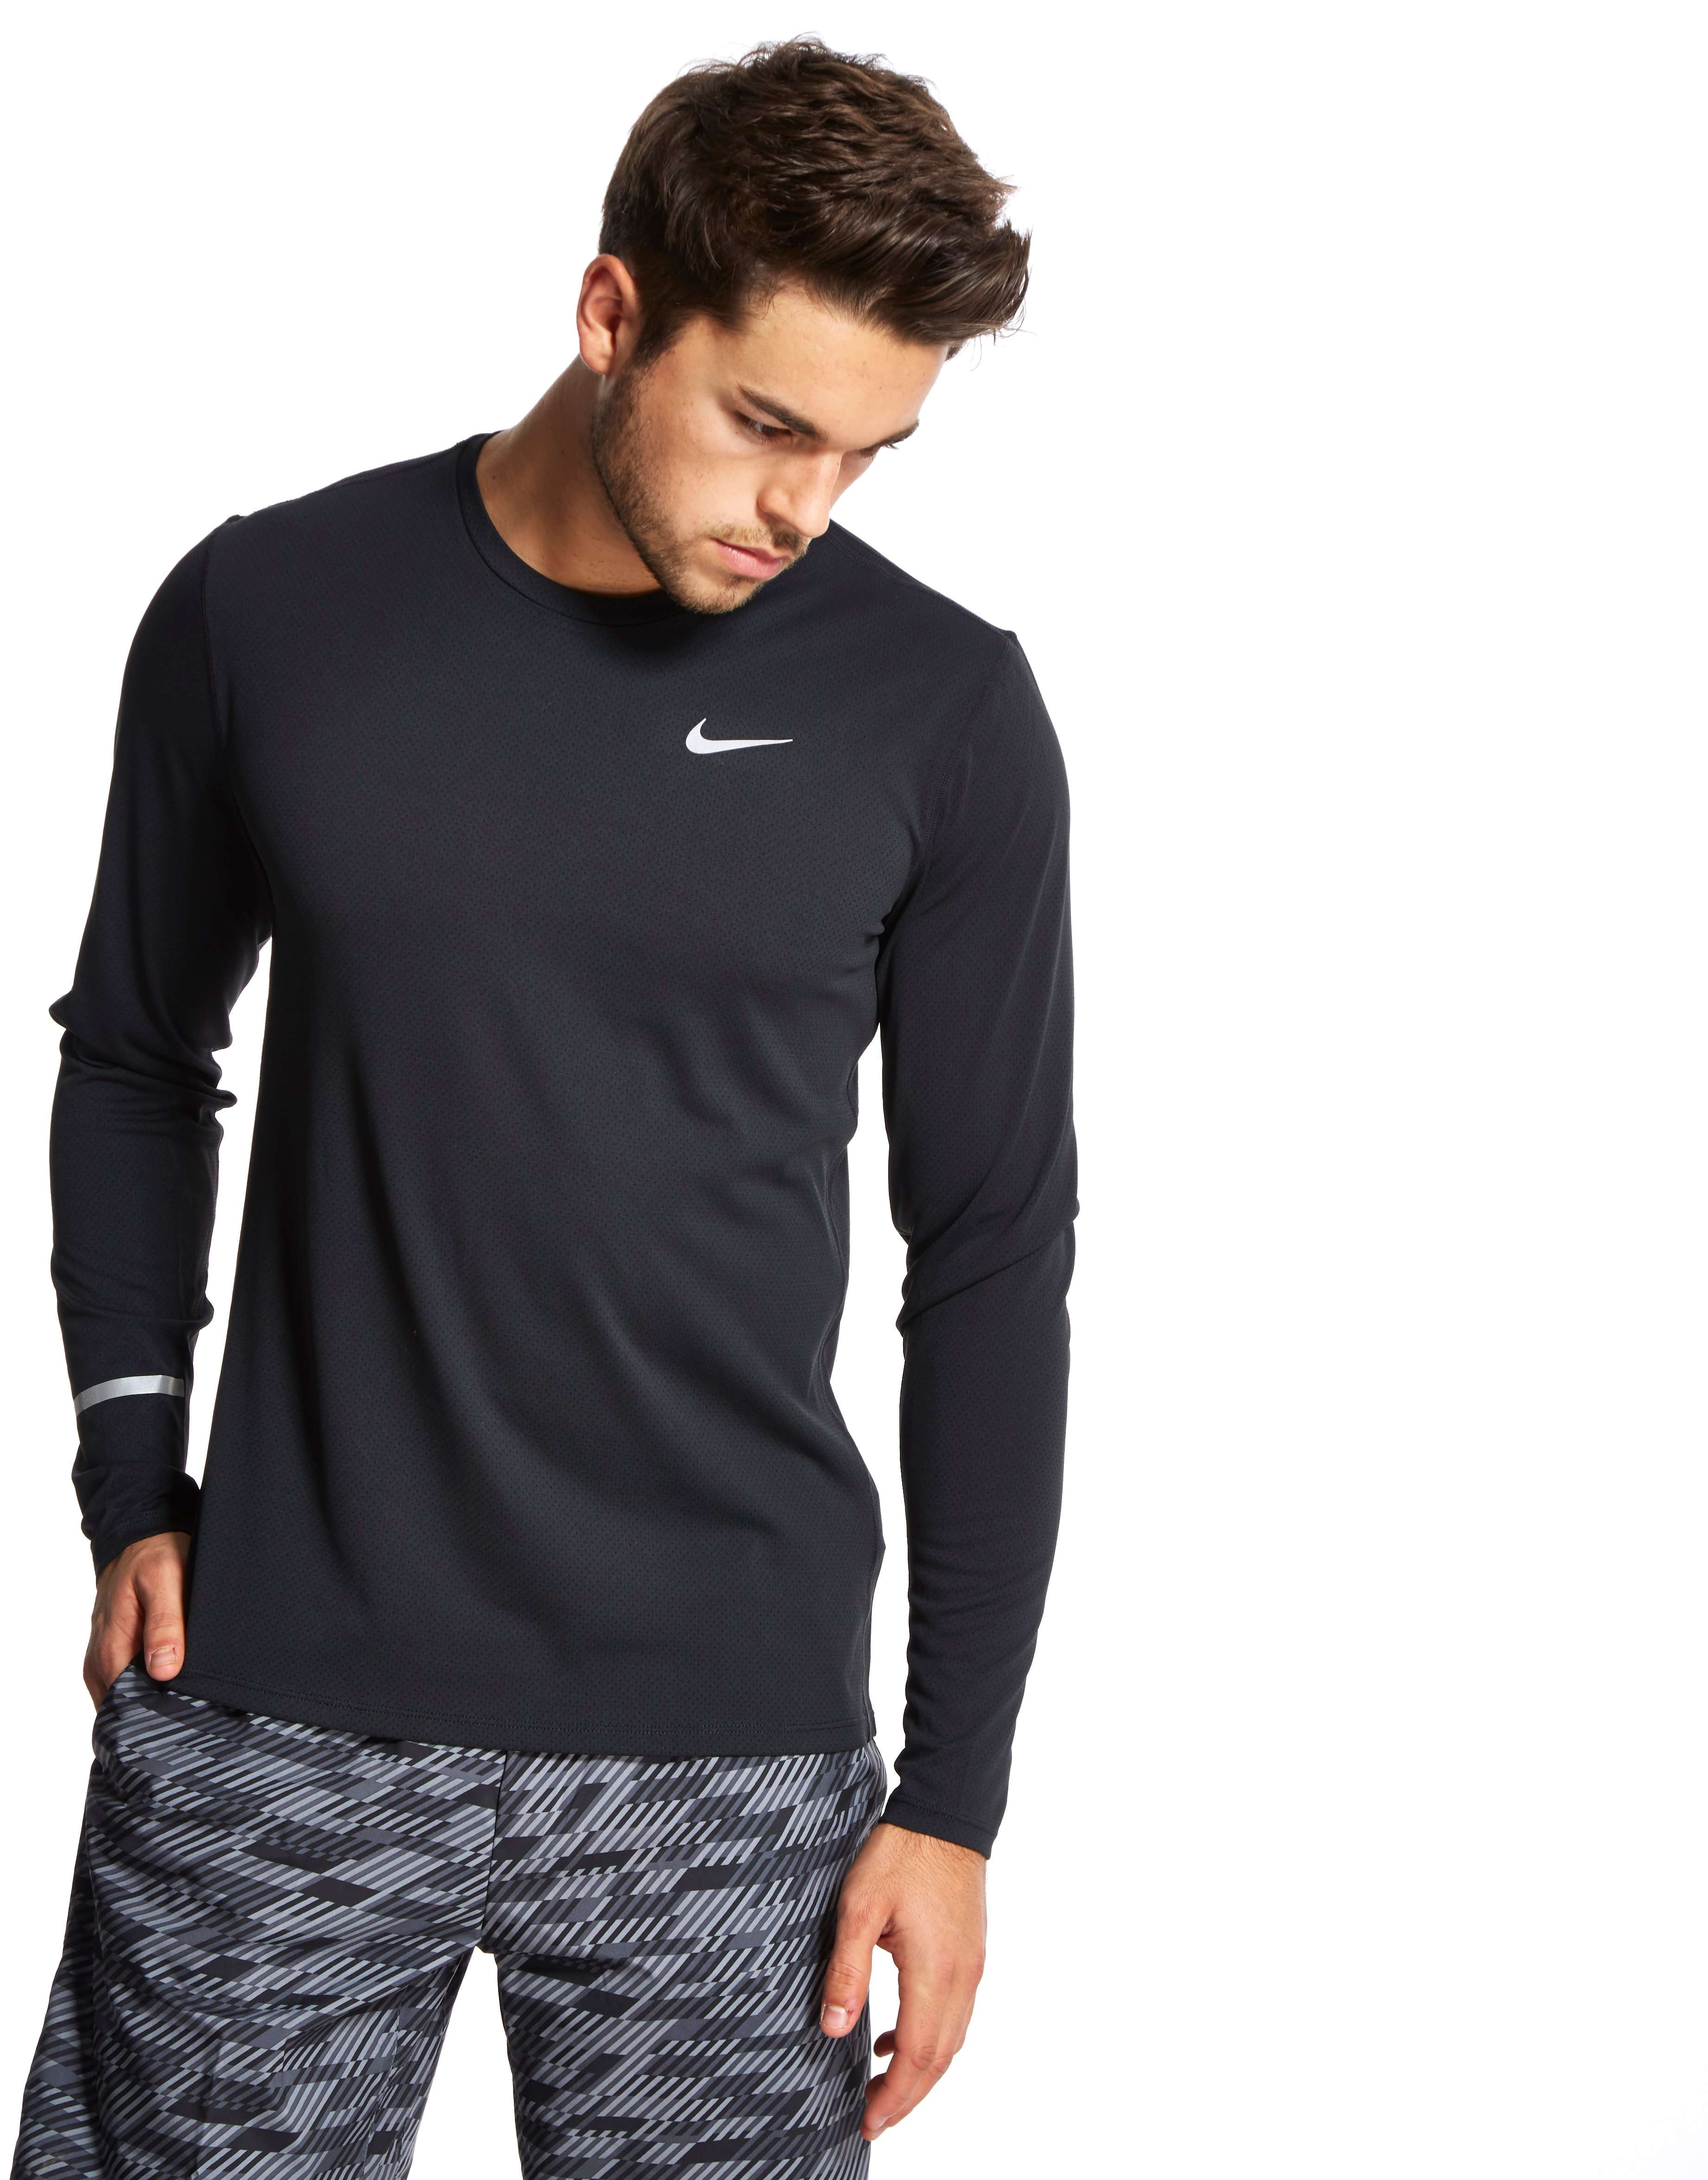 nike chaussures 668 - Nike Dri-FIT Contour Long Sleeve T-Shirt | JD Sports